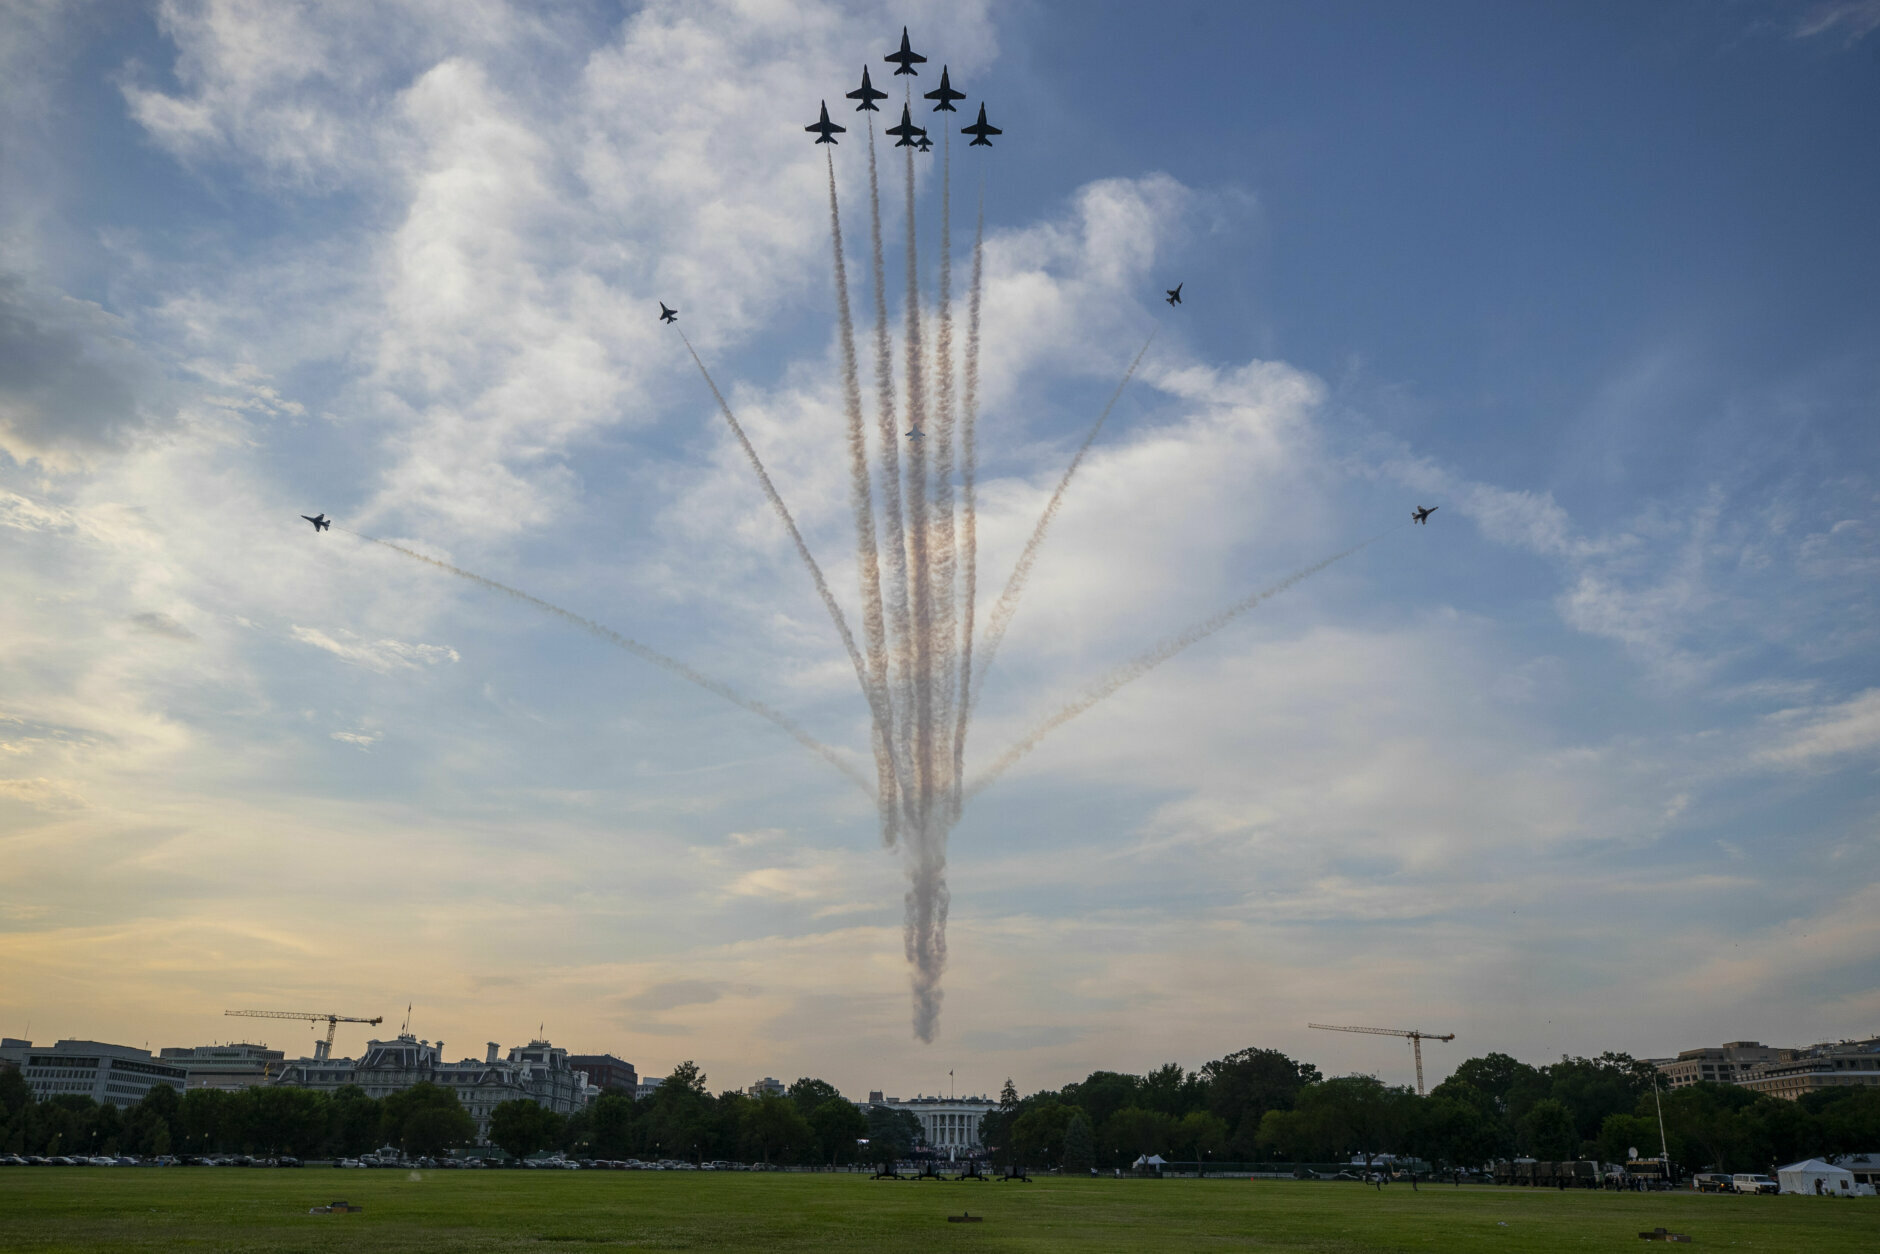 """The U.S. Navy Blue Angels and U.S. Air Force Thunderbirds fly over the White House during a """"Salute to America"""" event on the South Lawn of the White House, Saturday, July 4, 2020, in Washington. (AP Photo/Alex Brandon)"""